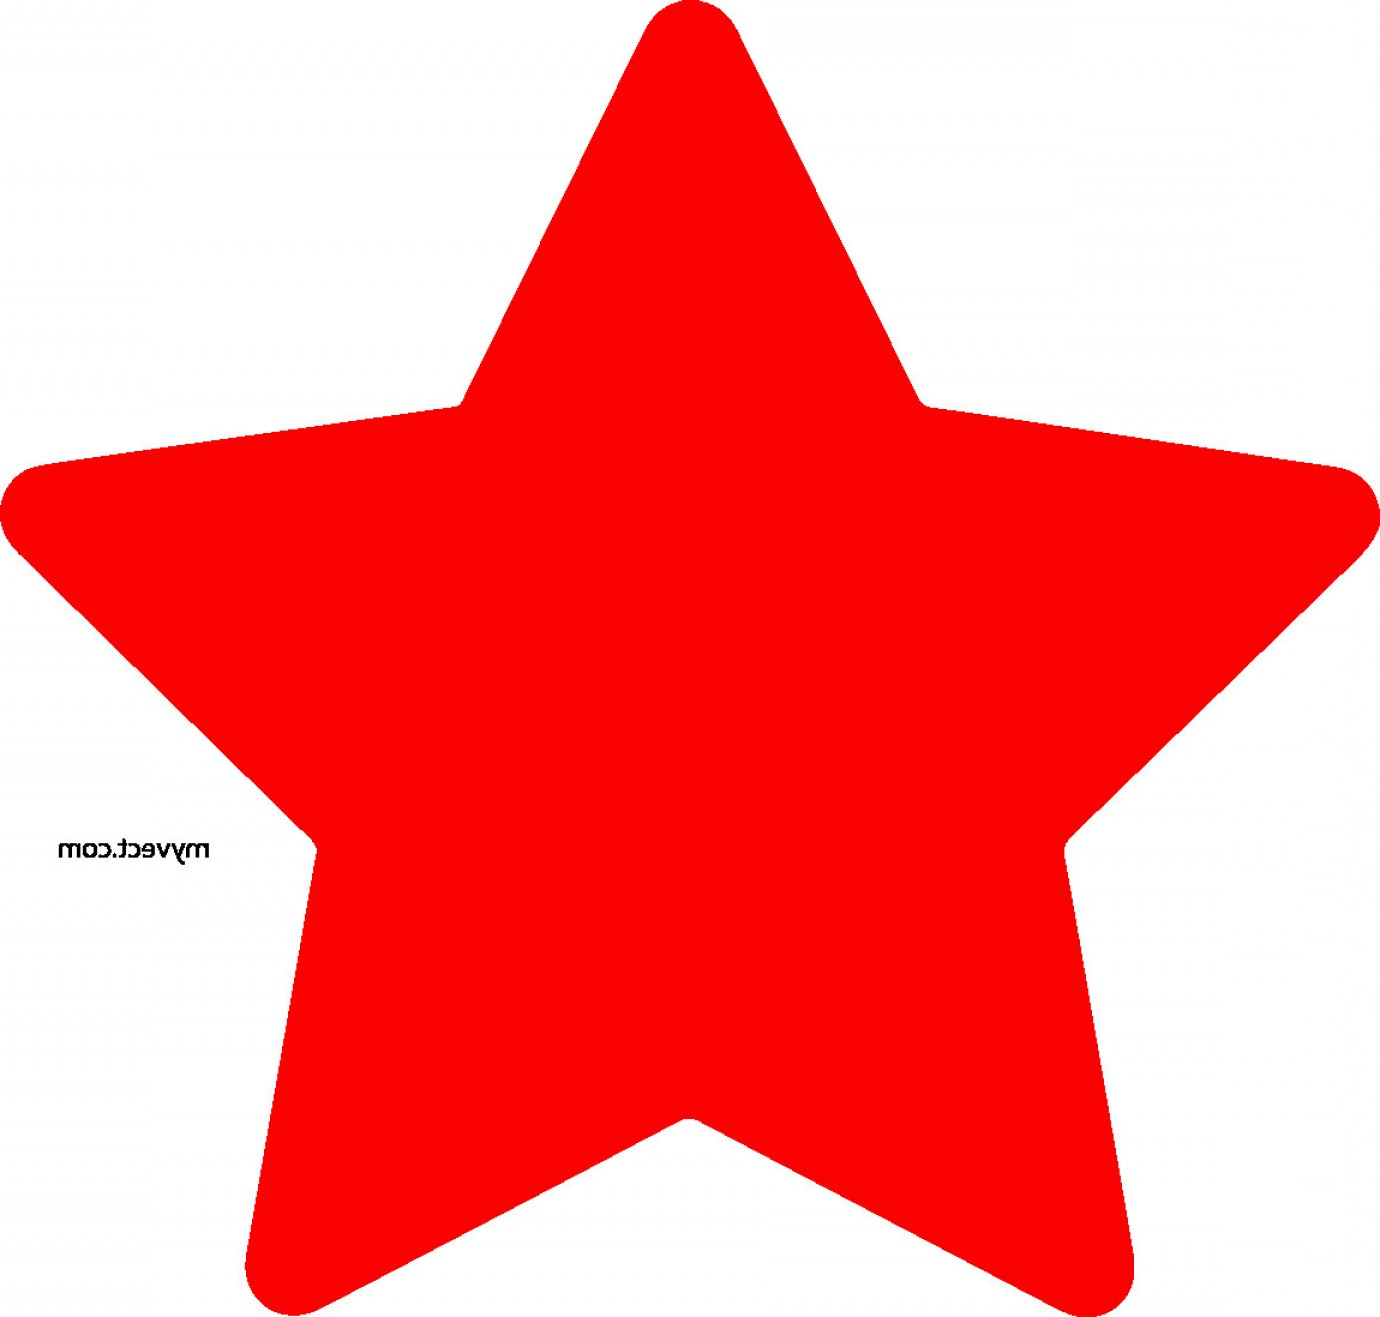 4 Point Nautical Star Vector: Star Vector Awesome Red Star Vector Myvect